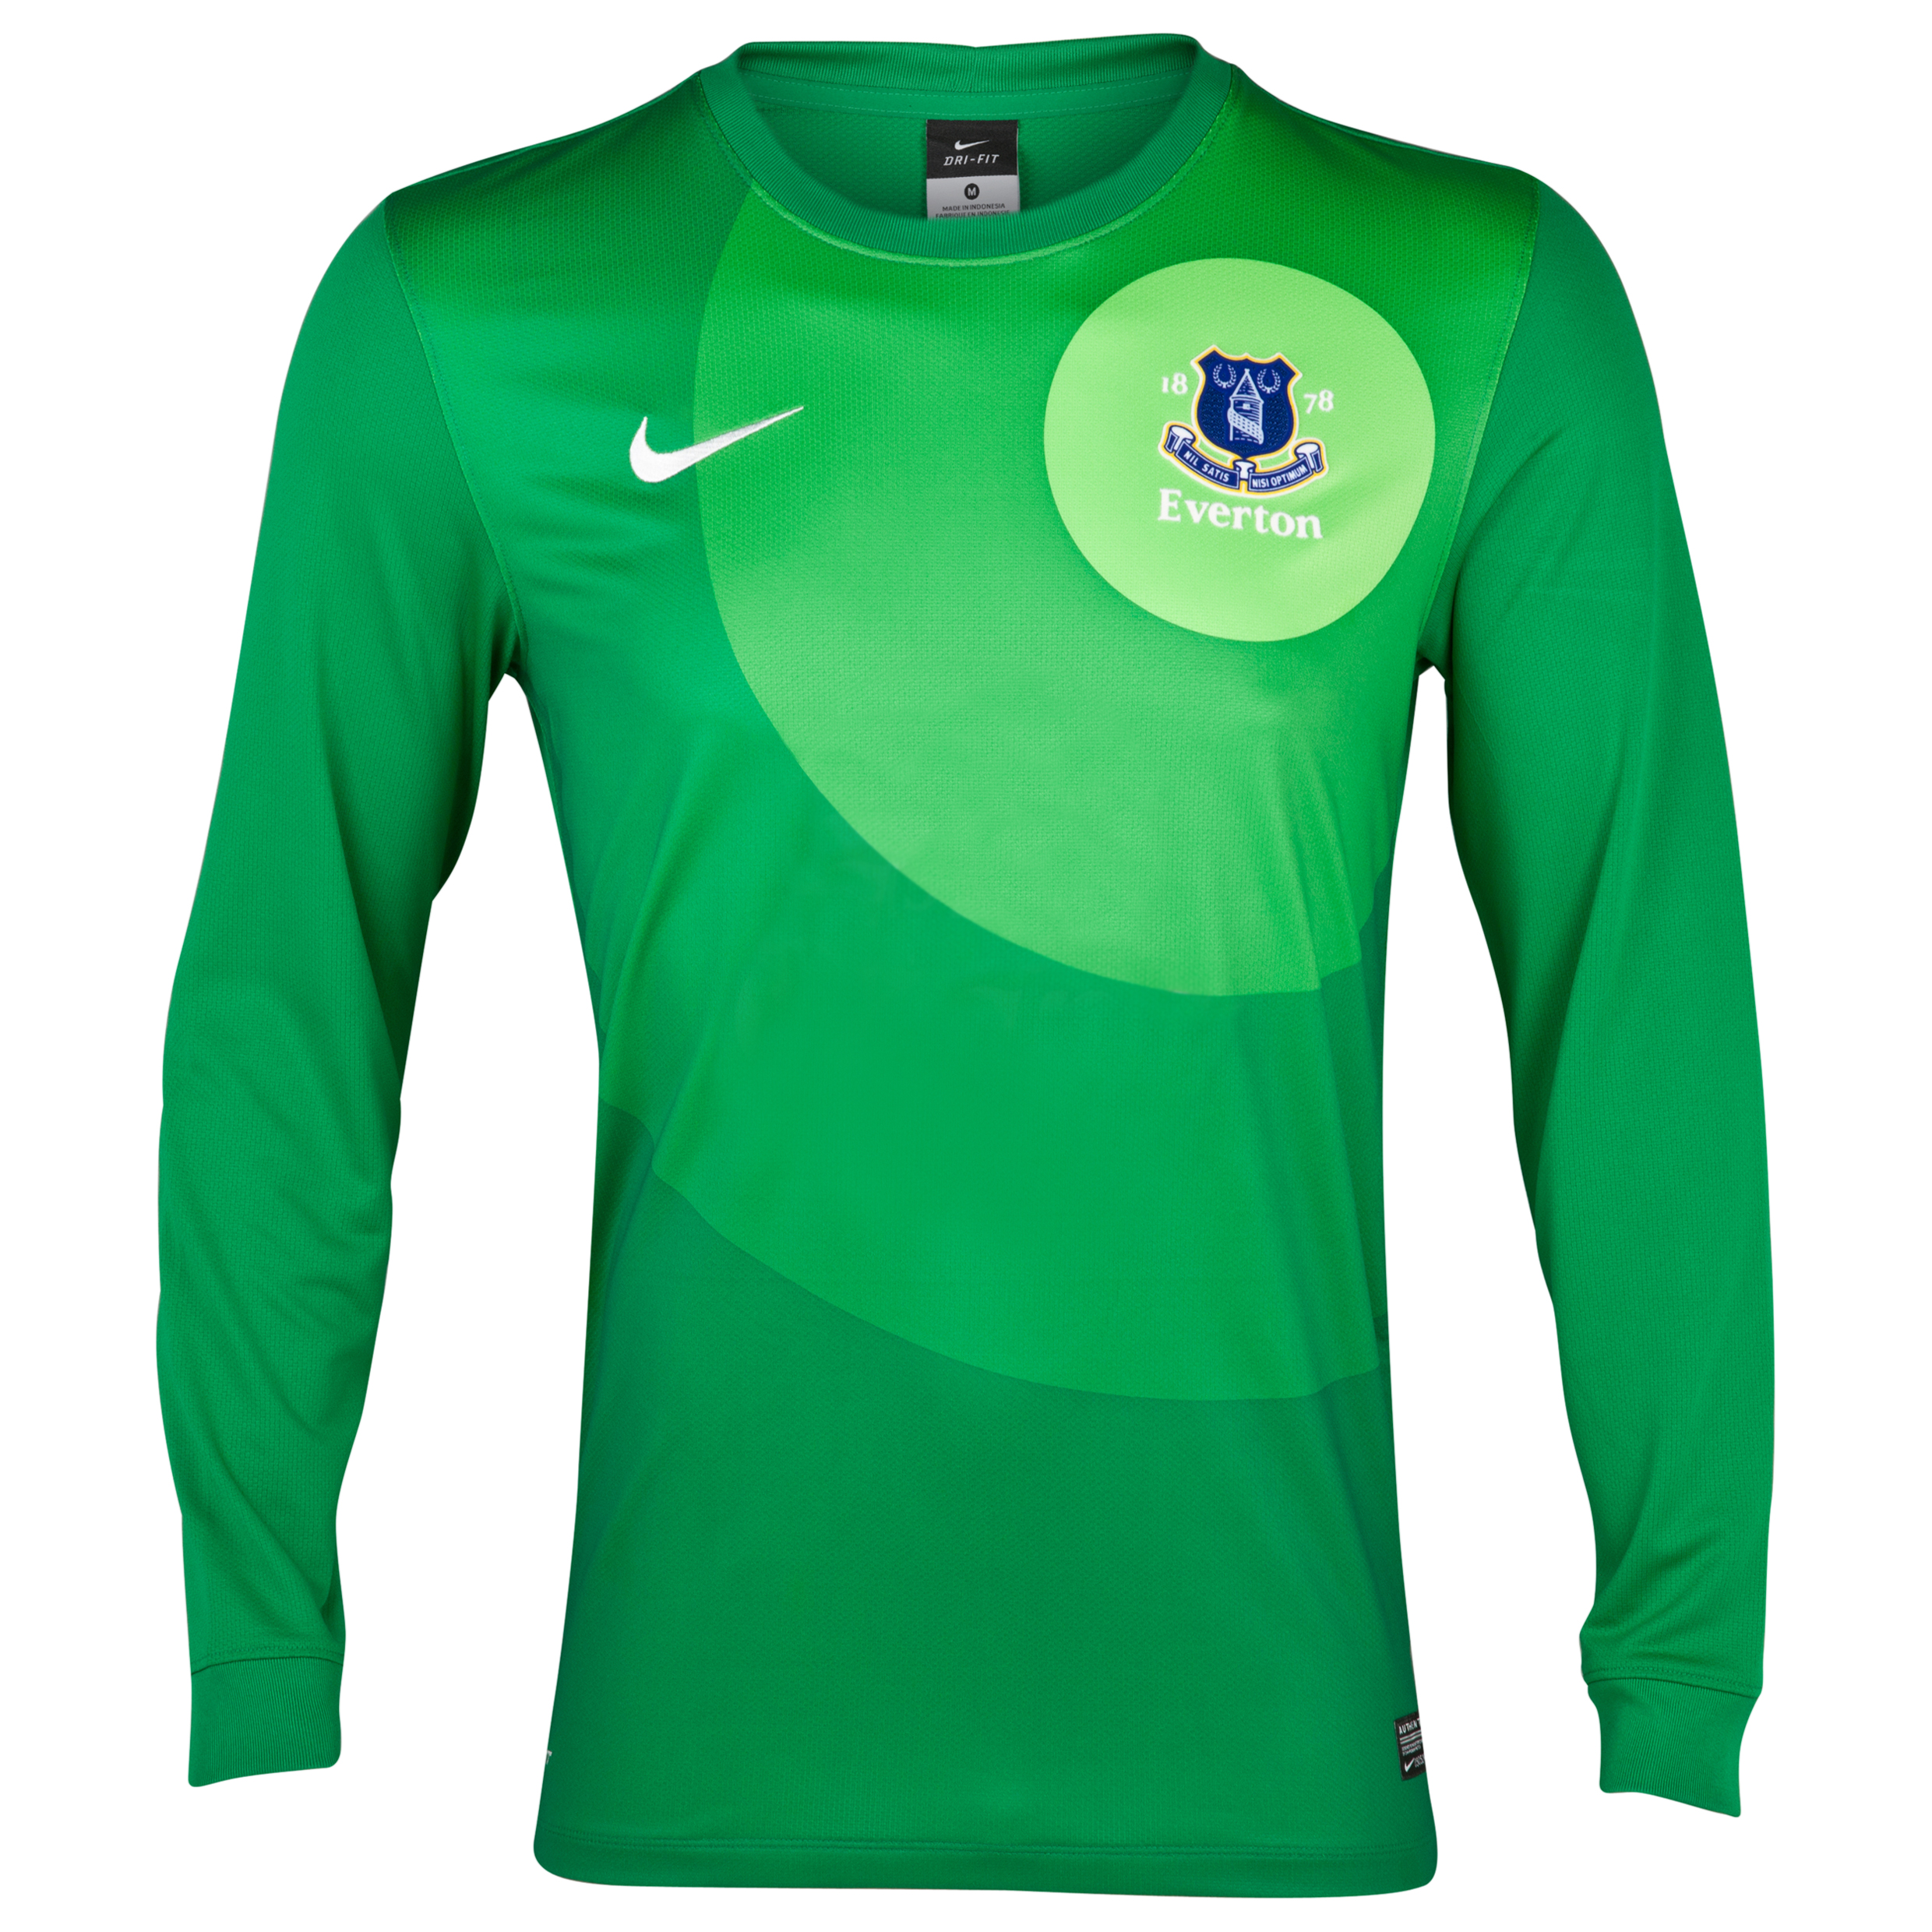 Everton Home Goalkeeper Shirt 2012/13 - Junior